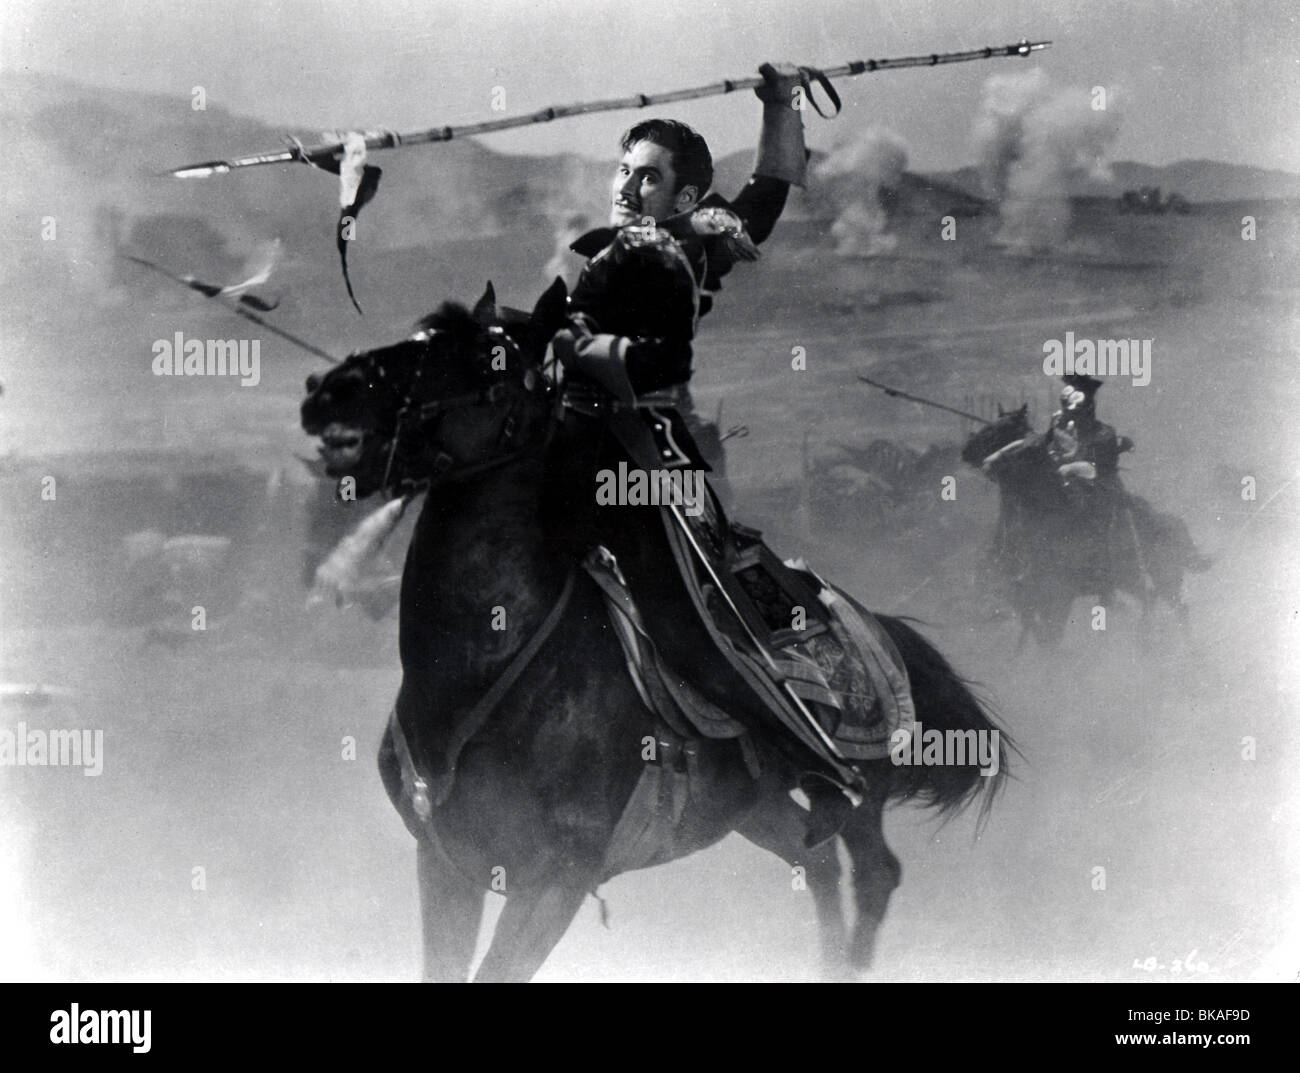 THE CHARGE OF THE LIGHT BRIGADE (1936) ERROL FLYNN CLB 006P - Stock Image